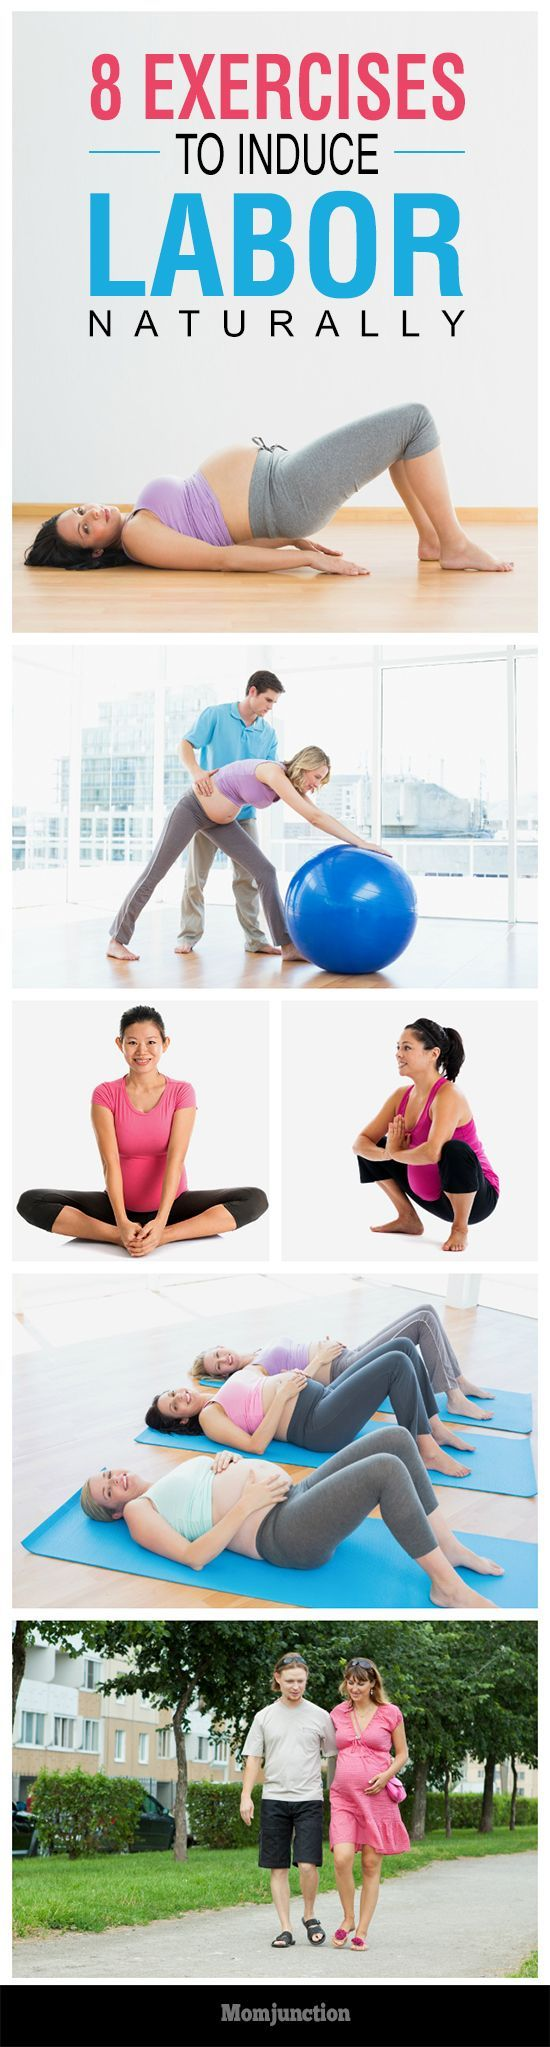 8 Effective Exercises To Induce Labor Naturally #Pregnancy